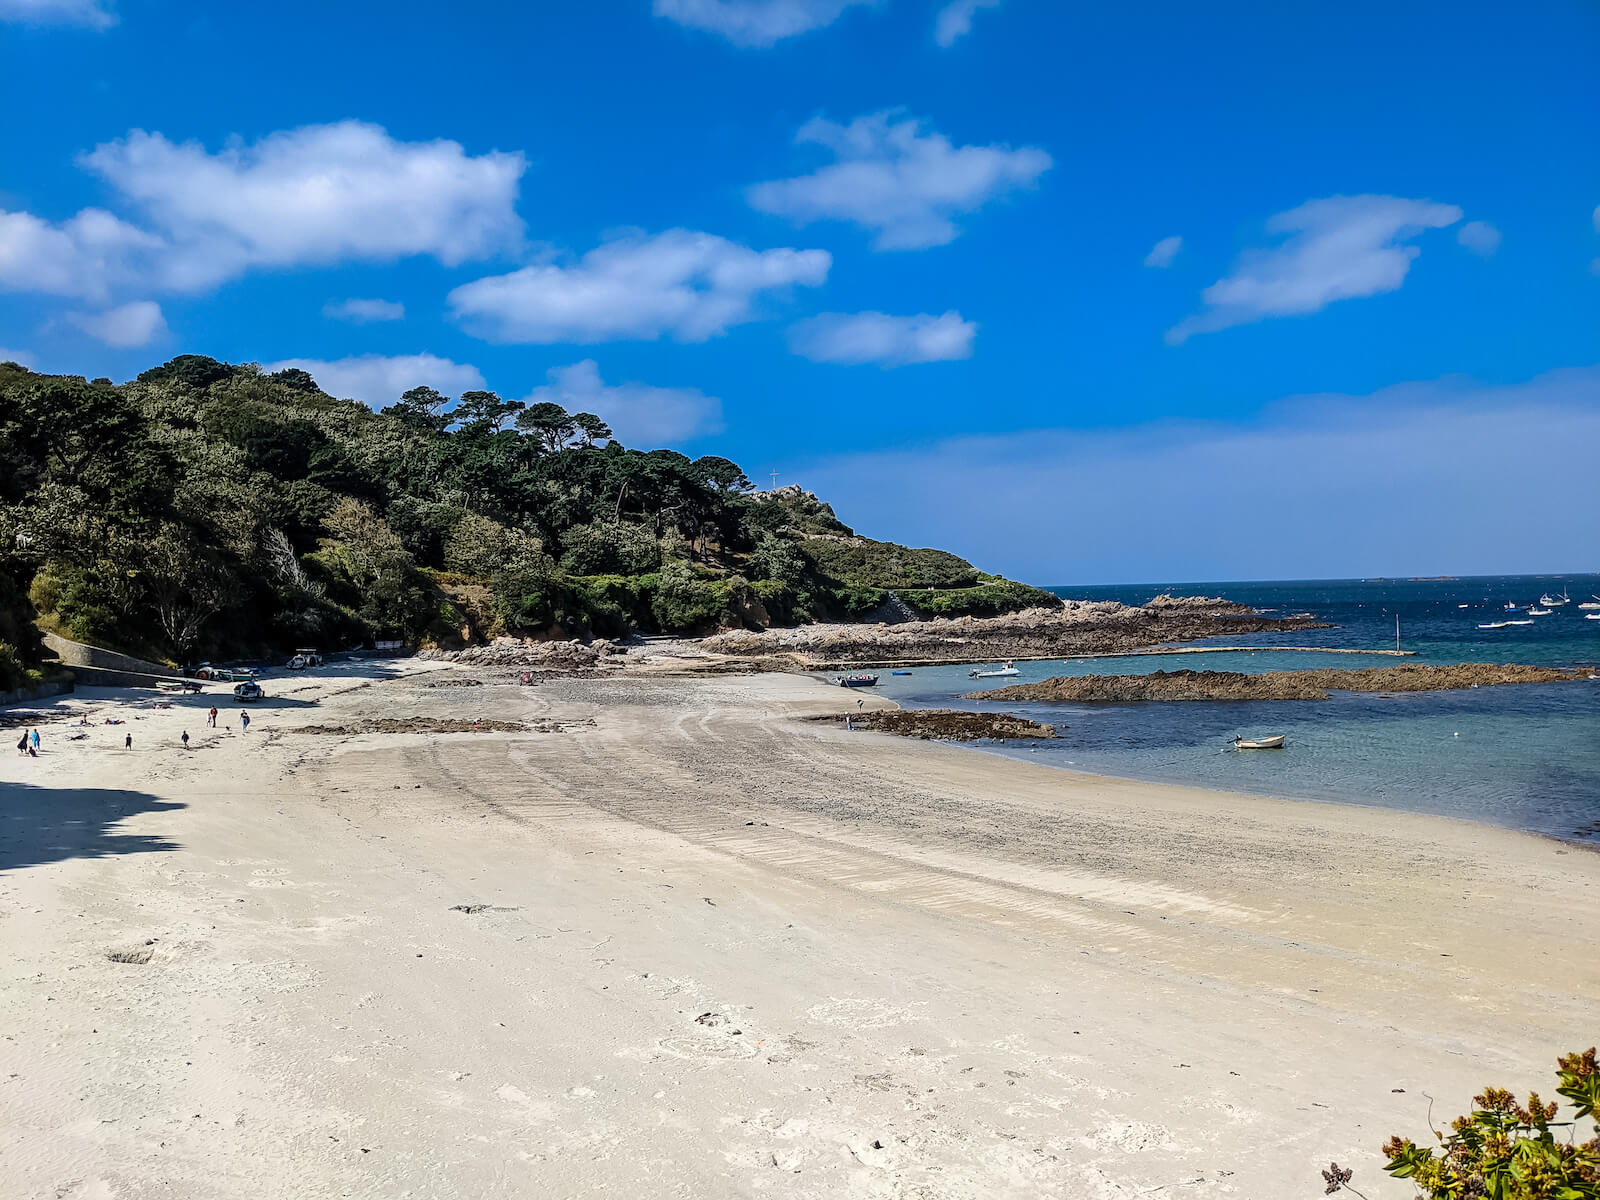 What's guernsey really like?